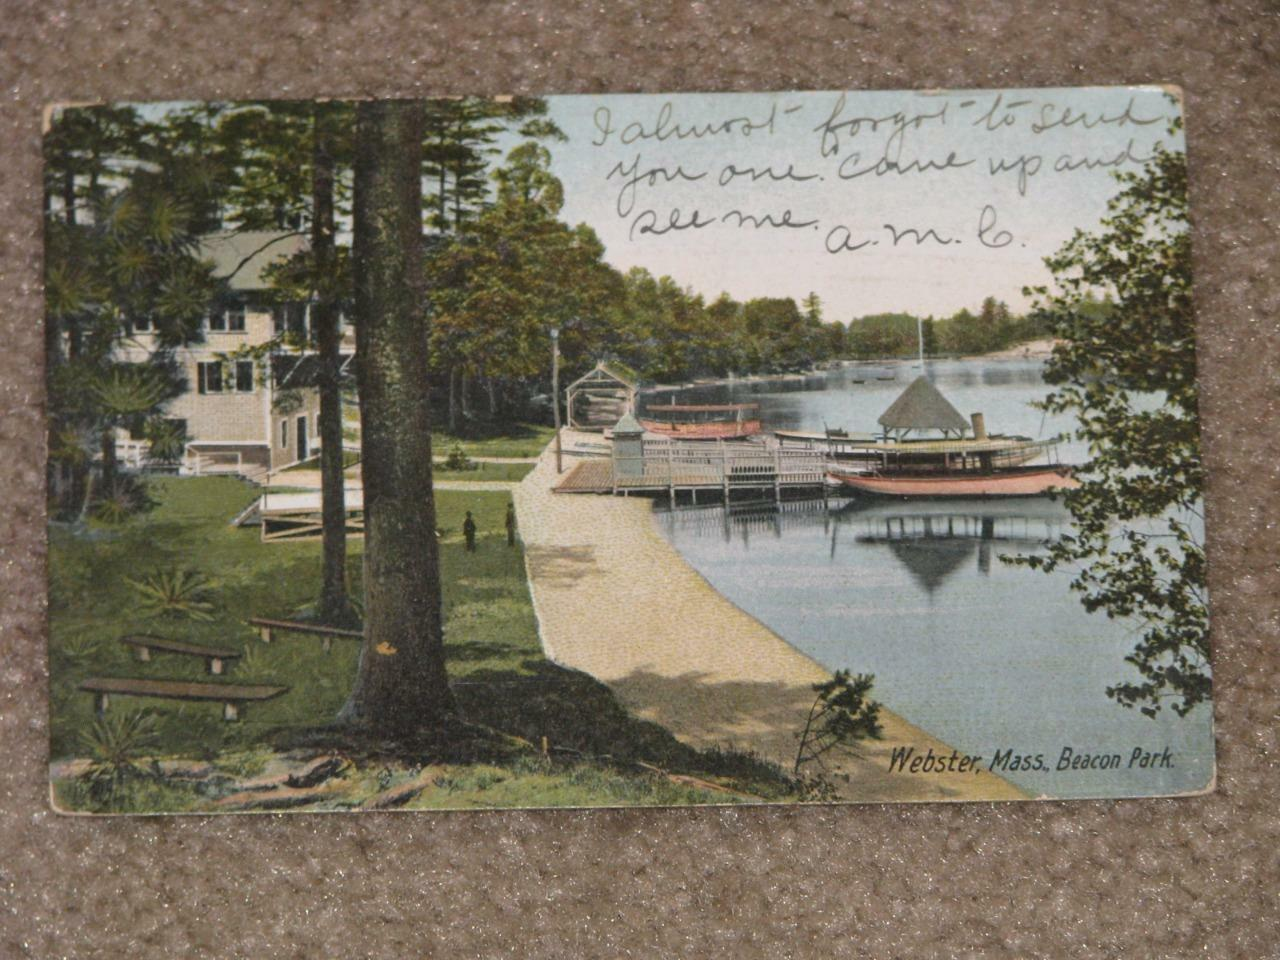 Beacon Park, Webster, Mass., 1906, used vintage card